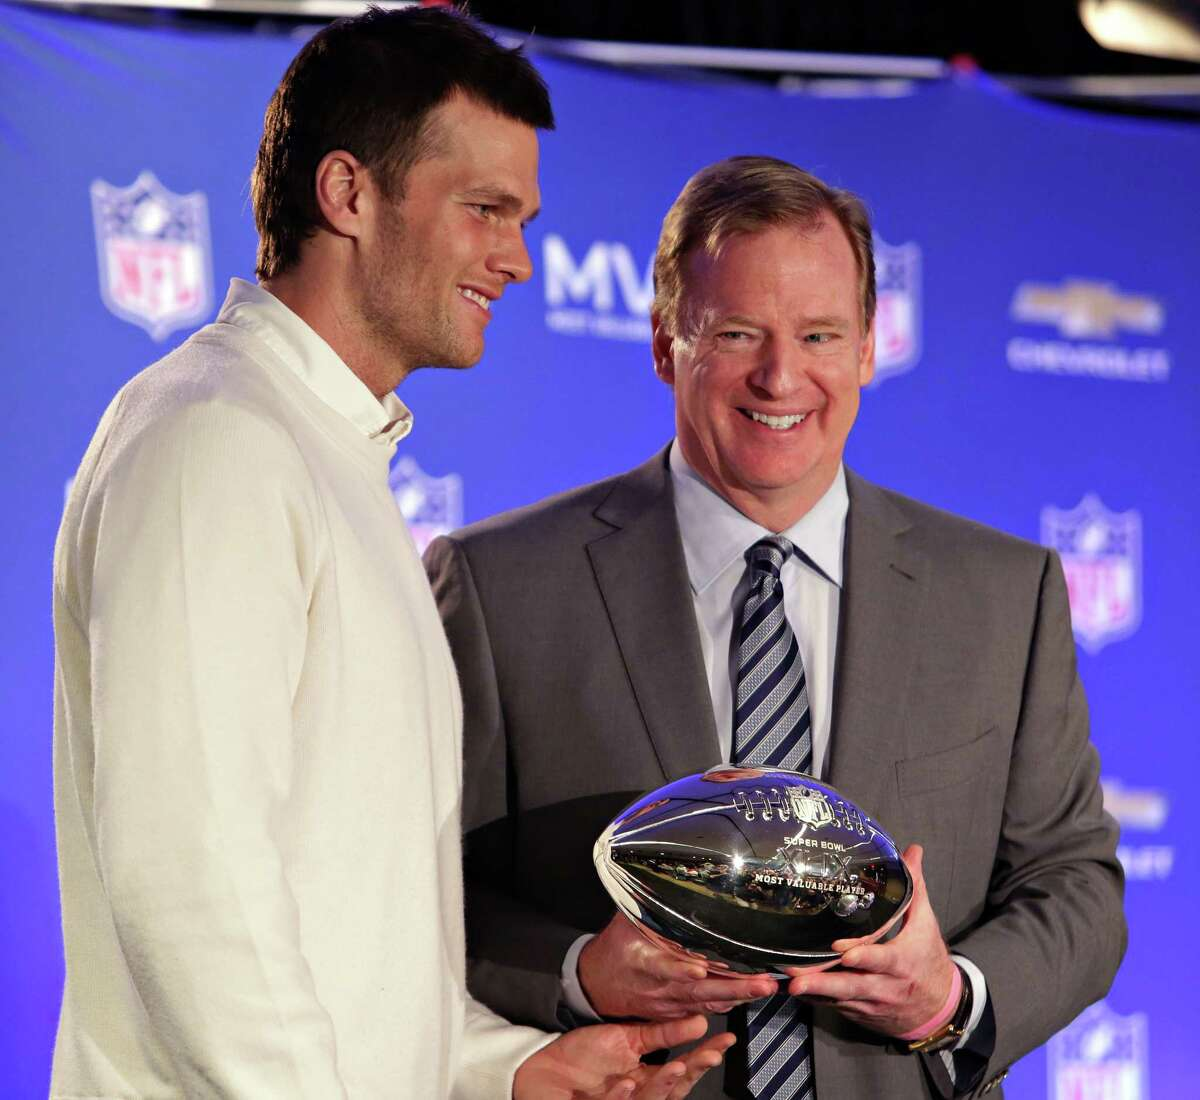 In this Feb. 2, 2015 photo, New England Patriots quarterback Tom Brady, left, poses with NFL Commissioner Rodger Goodell during a news conference where Goodell presented Brady with the MVP award from the NFL Super Bowl XLIX football game.